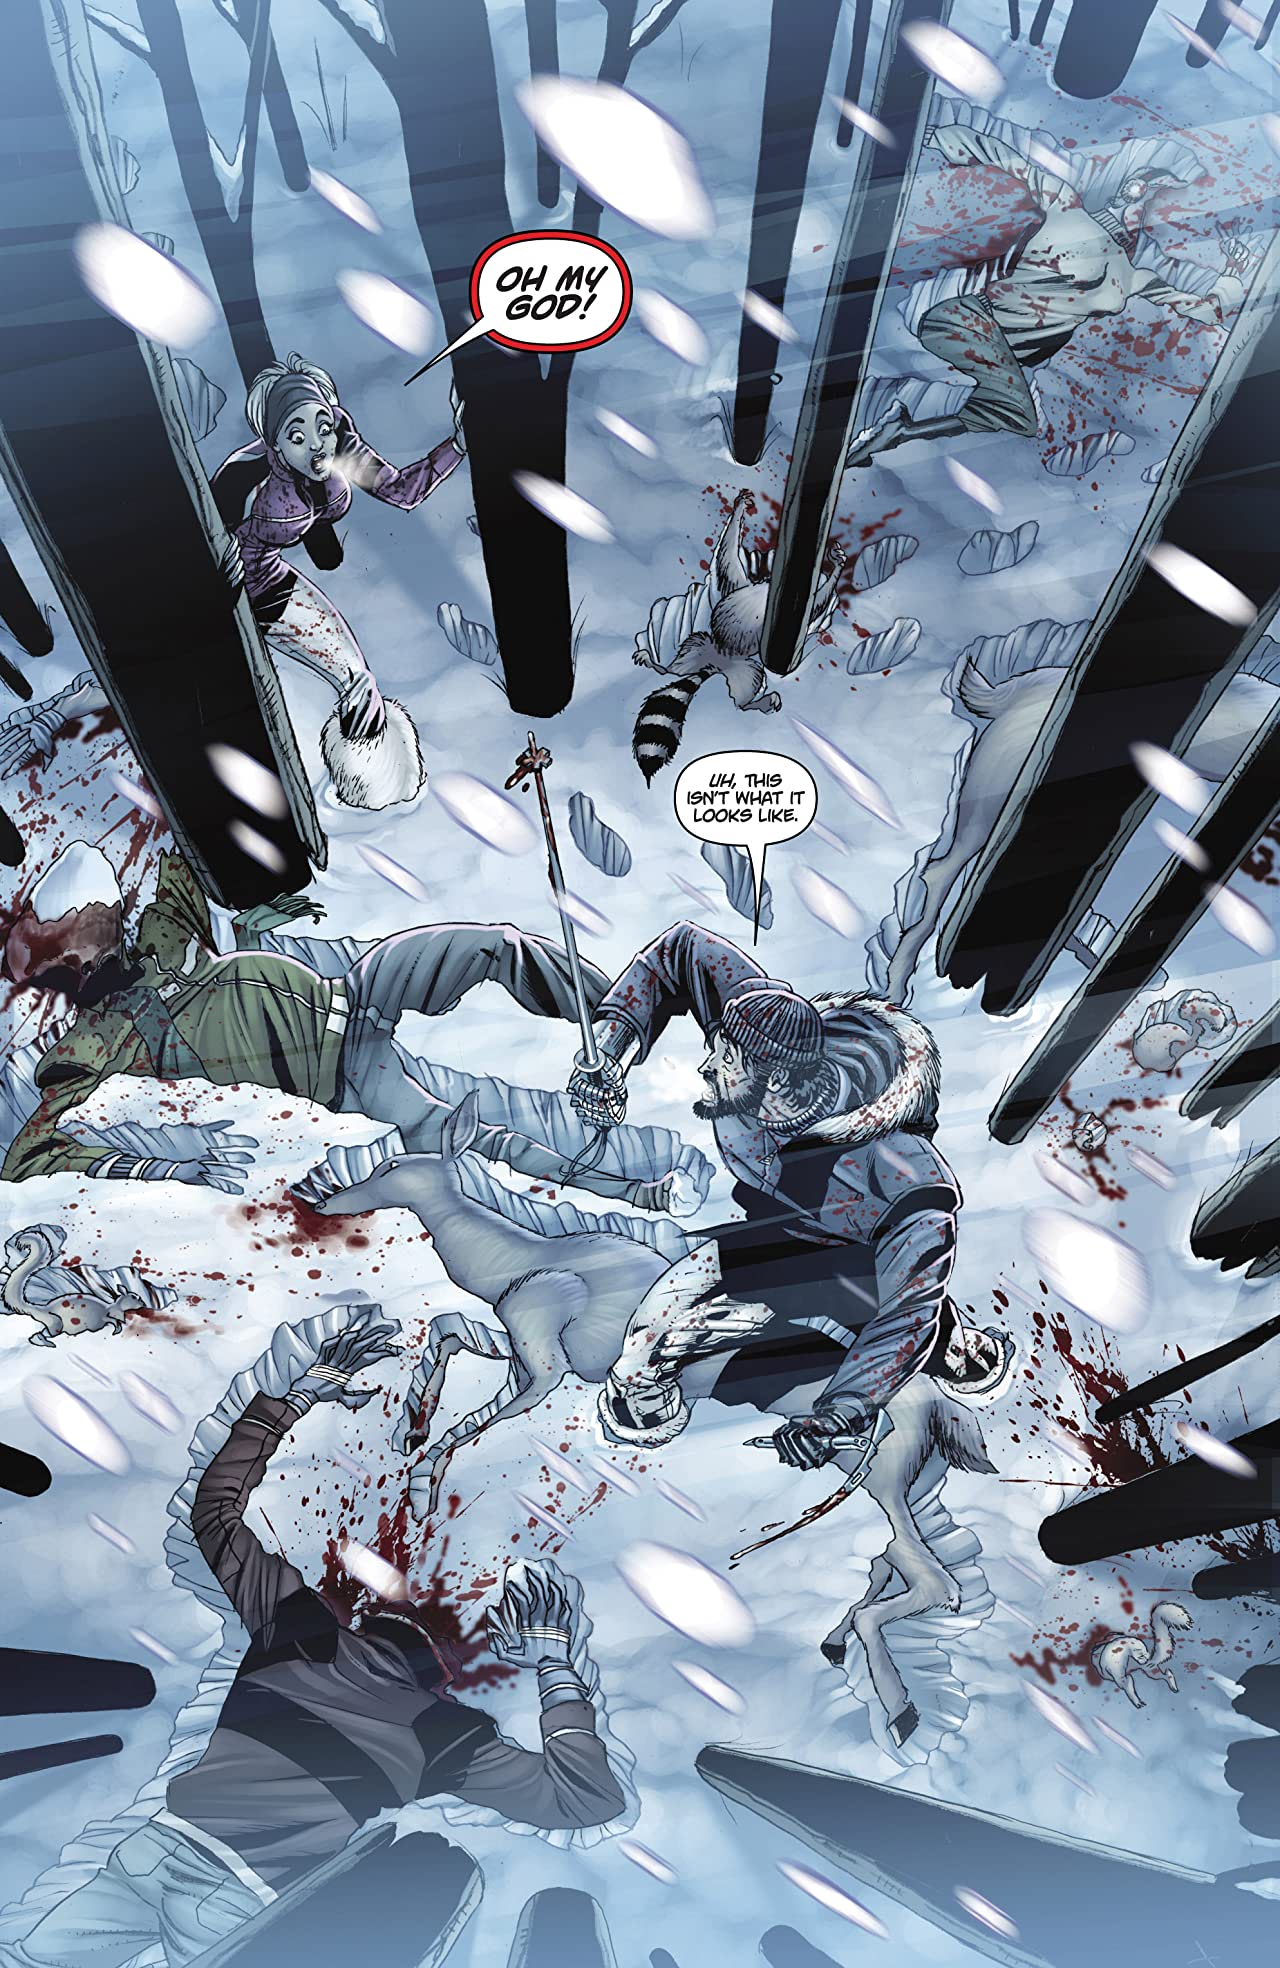 Army of Darkness Vol. 2 #15